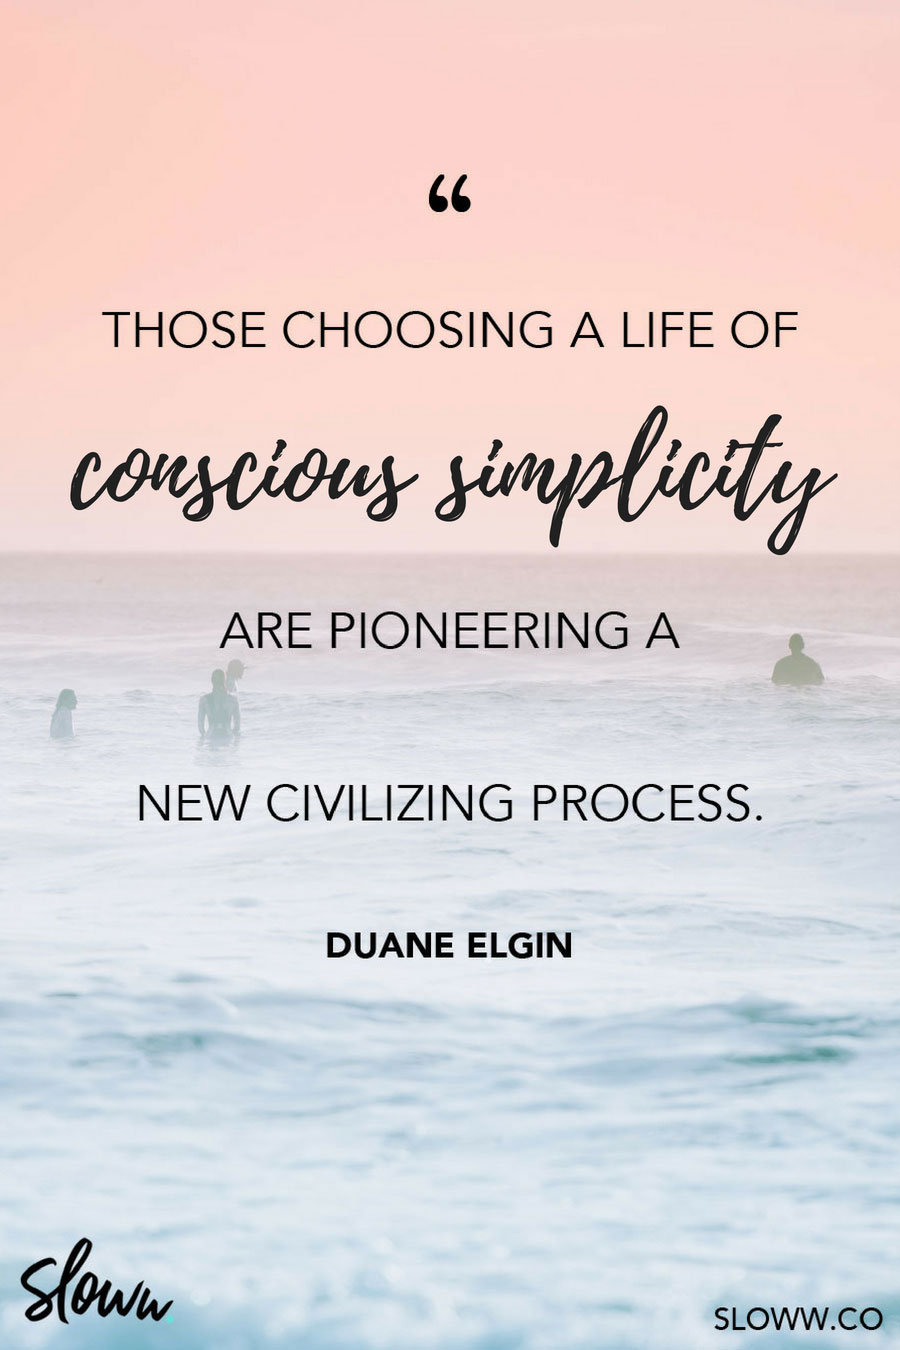 Sloww Conscious Simplicity Quote